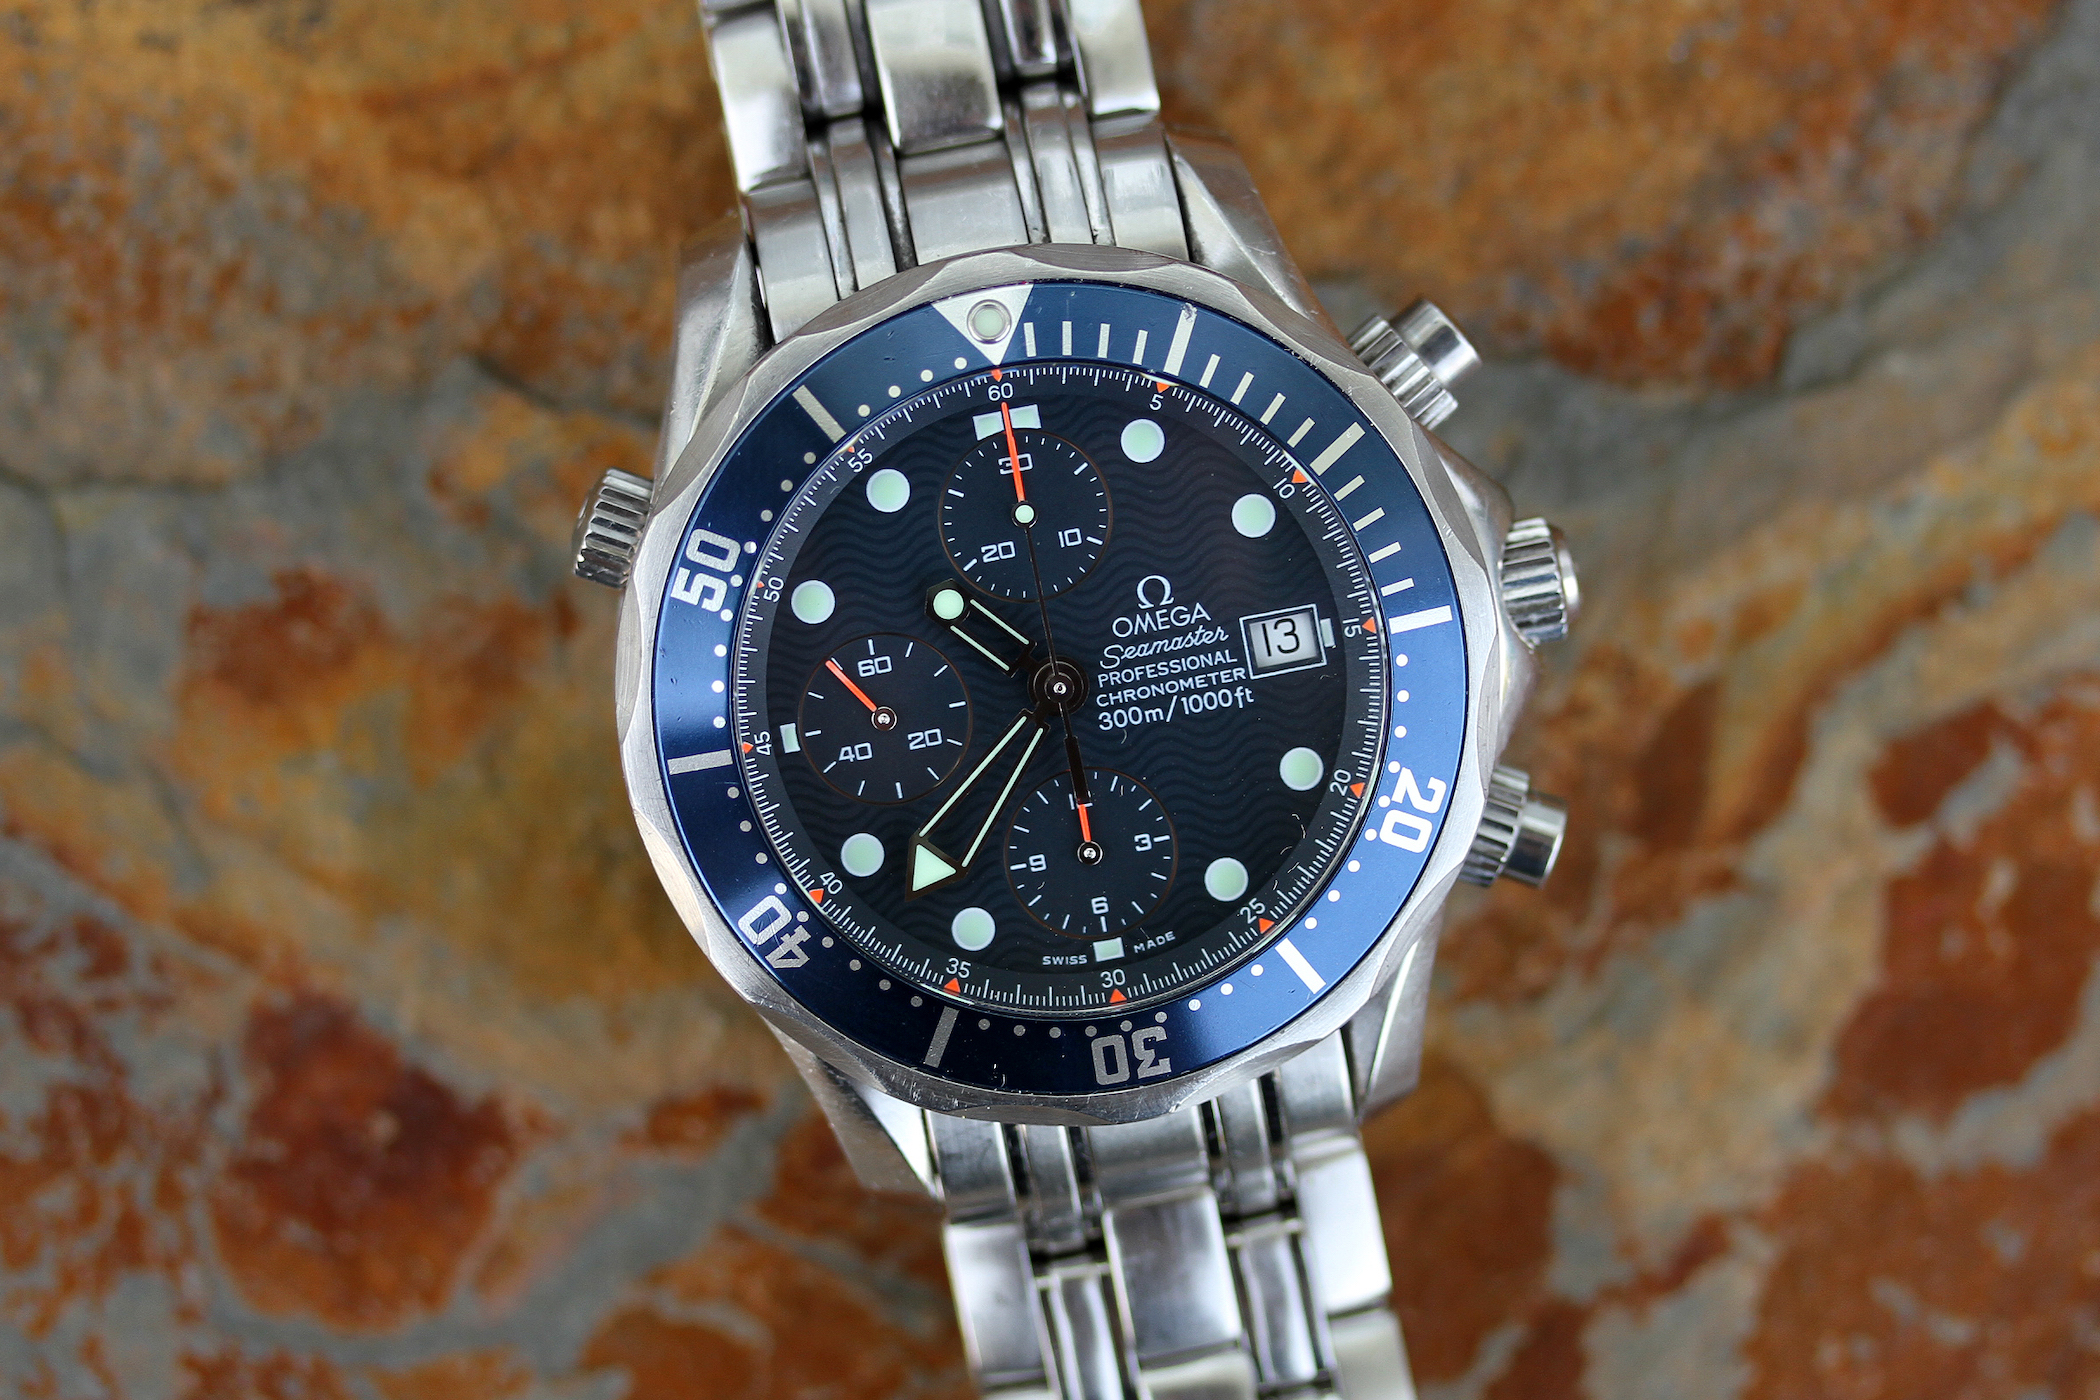 Omega Seamaster Diver 300m Chronograph Review Specs Price